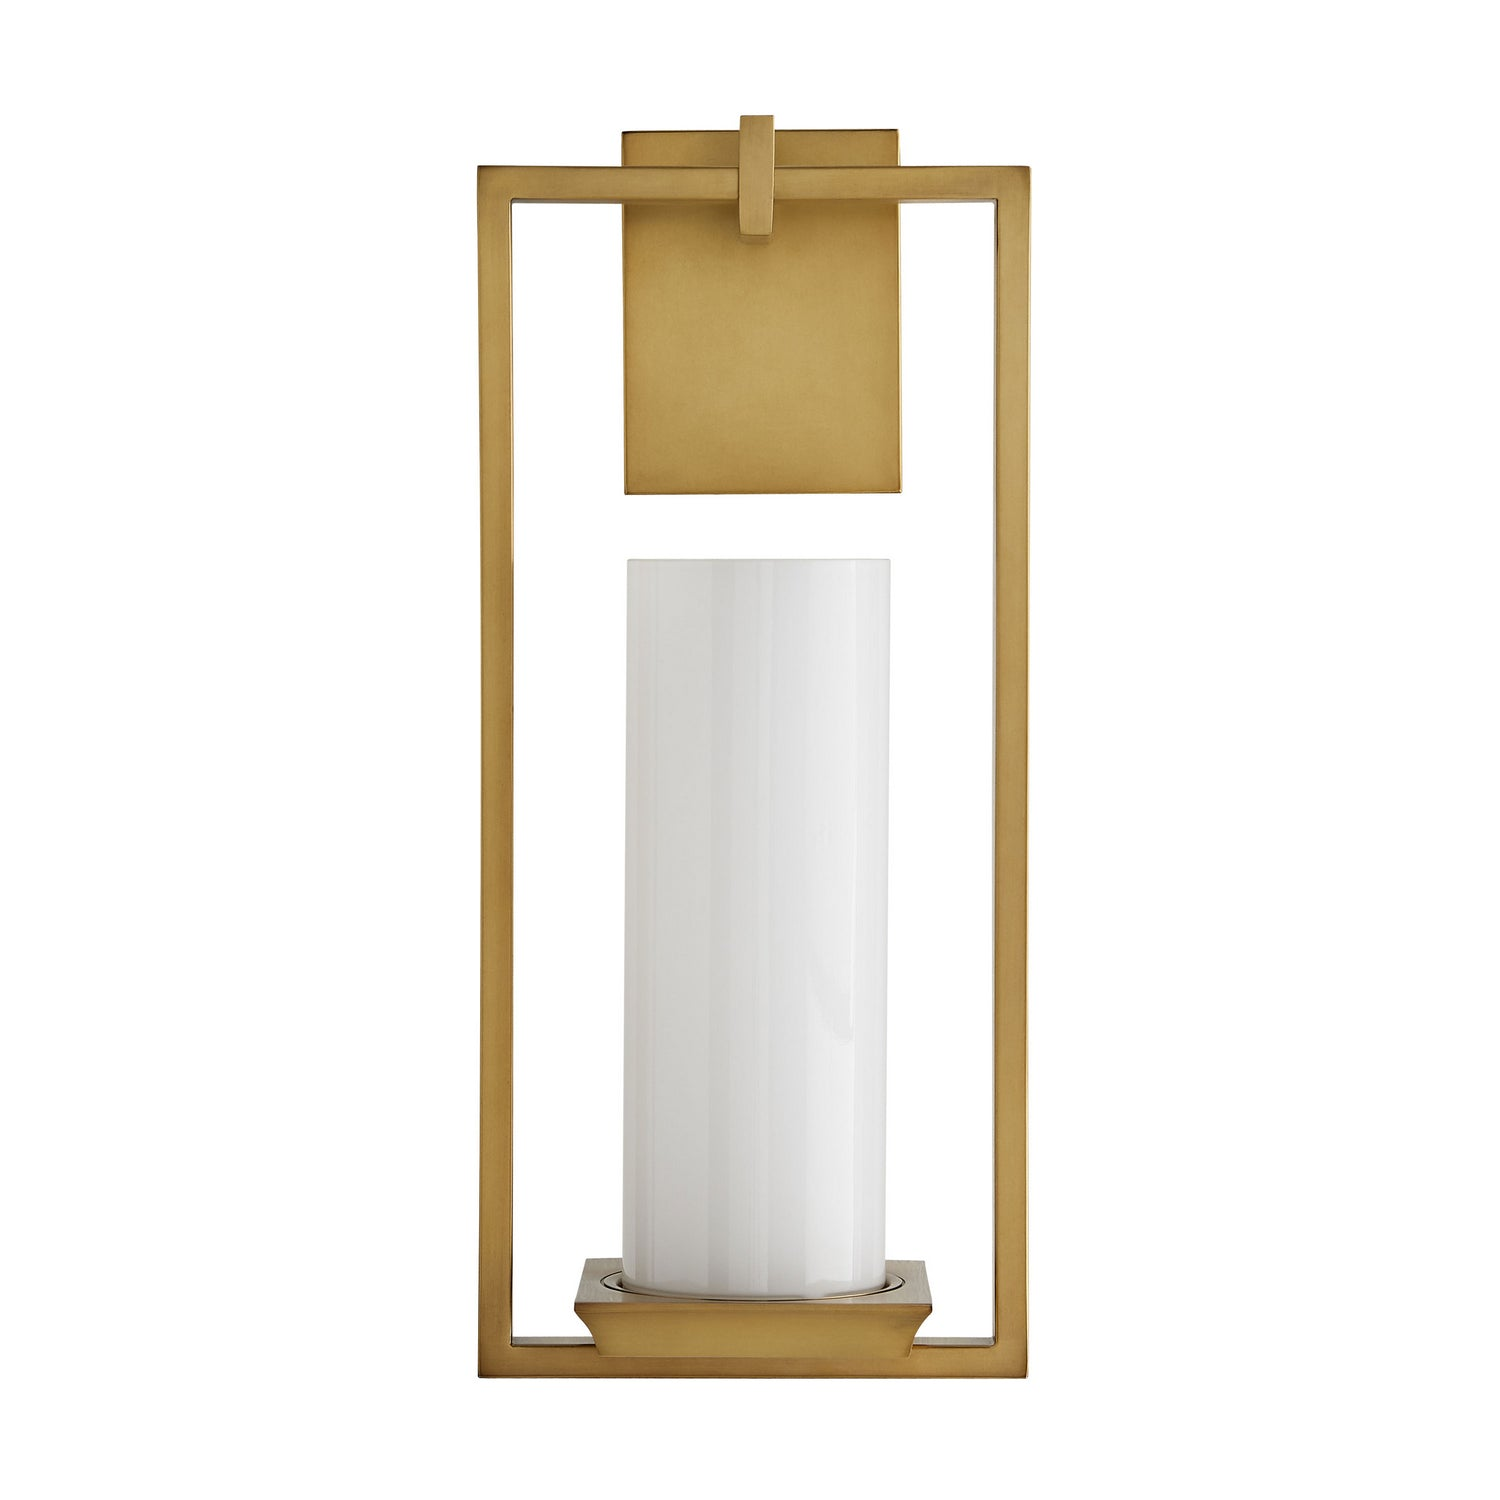 Arteriors - One Light Wall Sconce - Ray Booth for Arteriors - Antique Brass